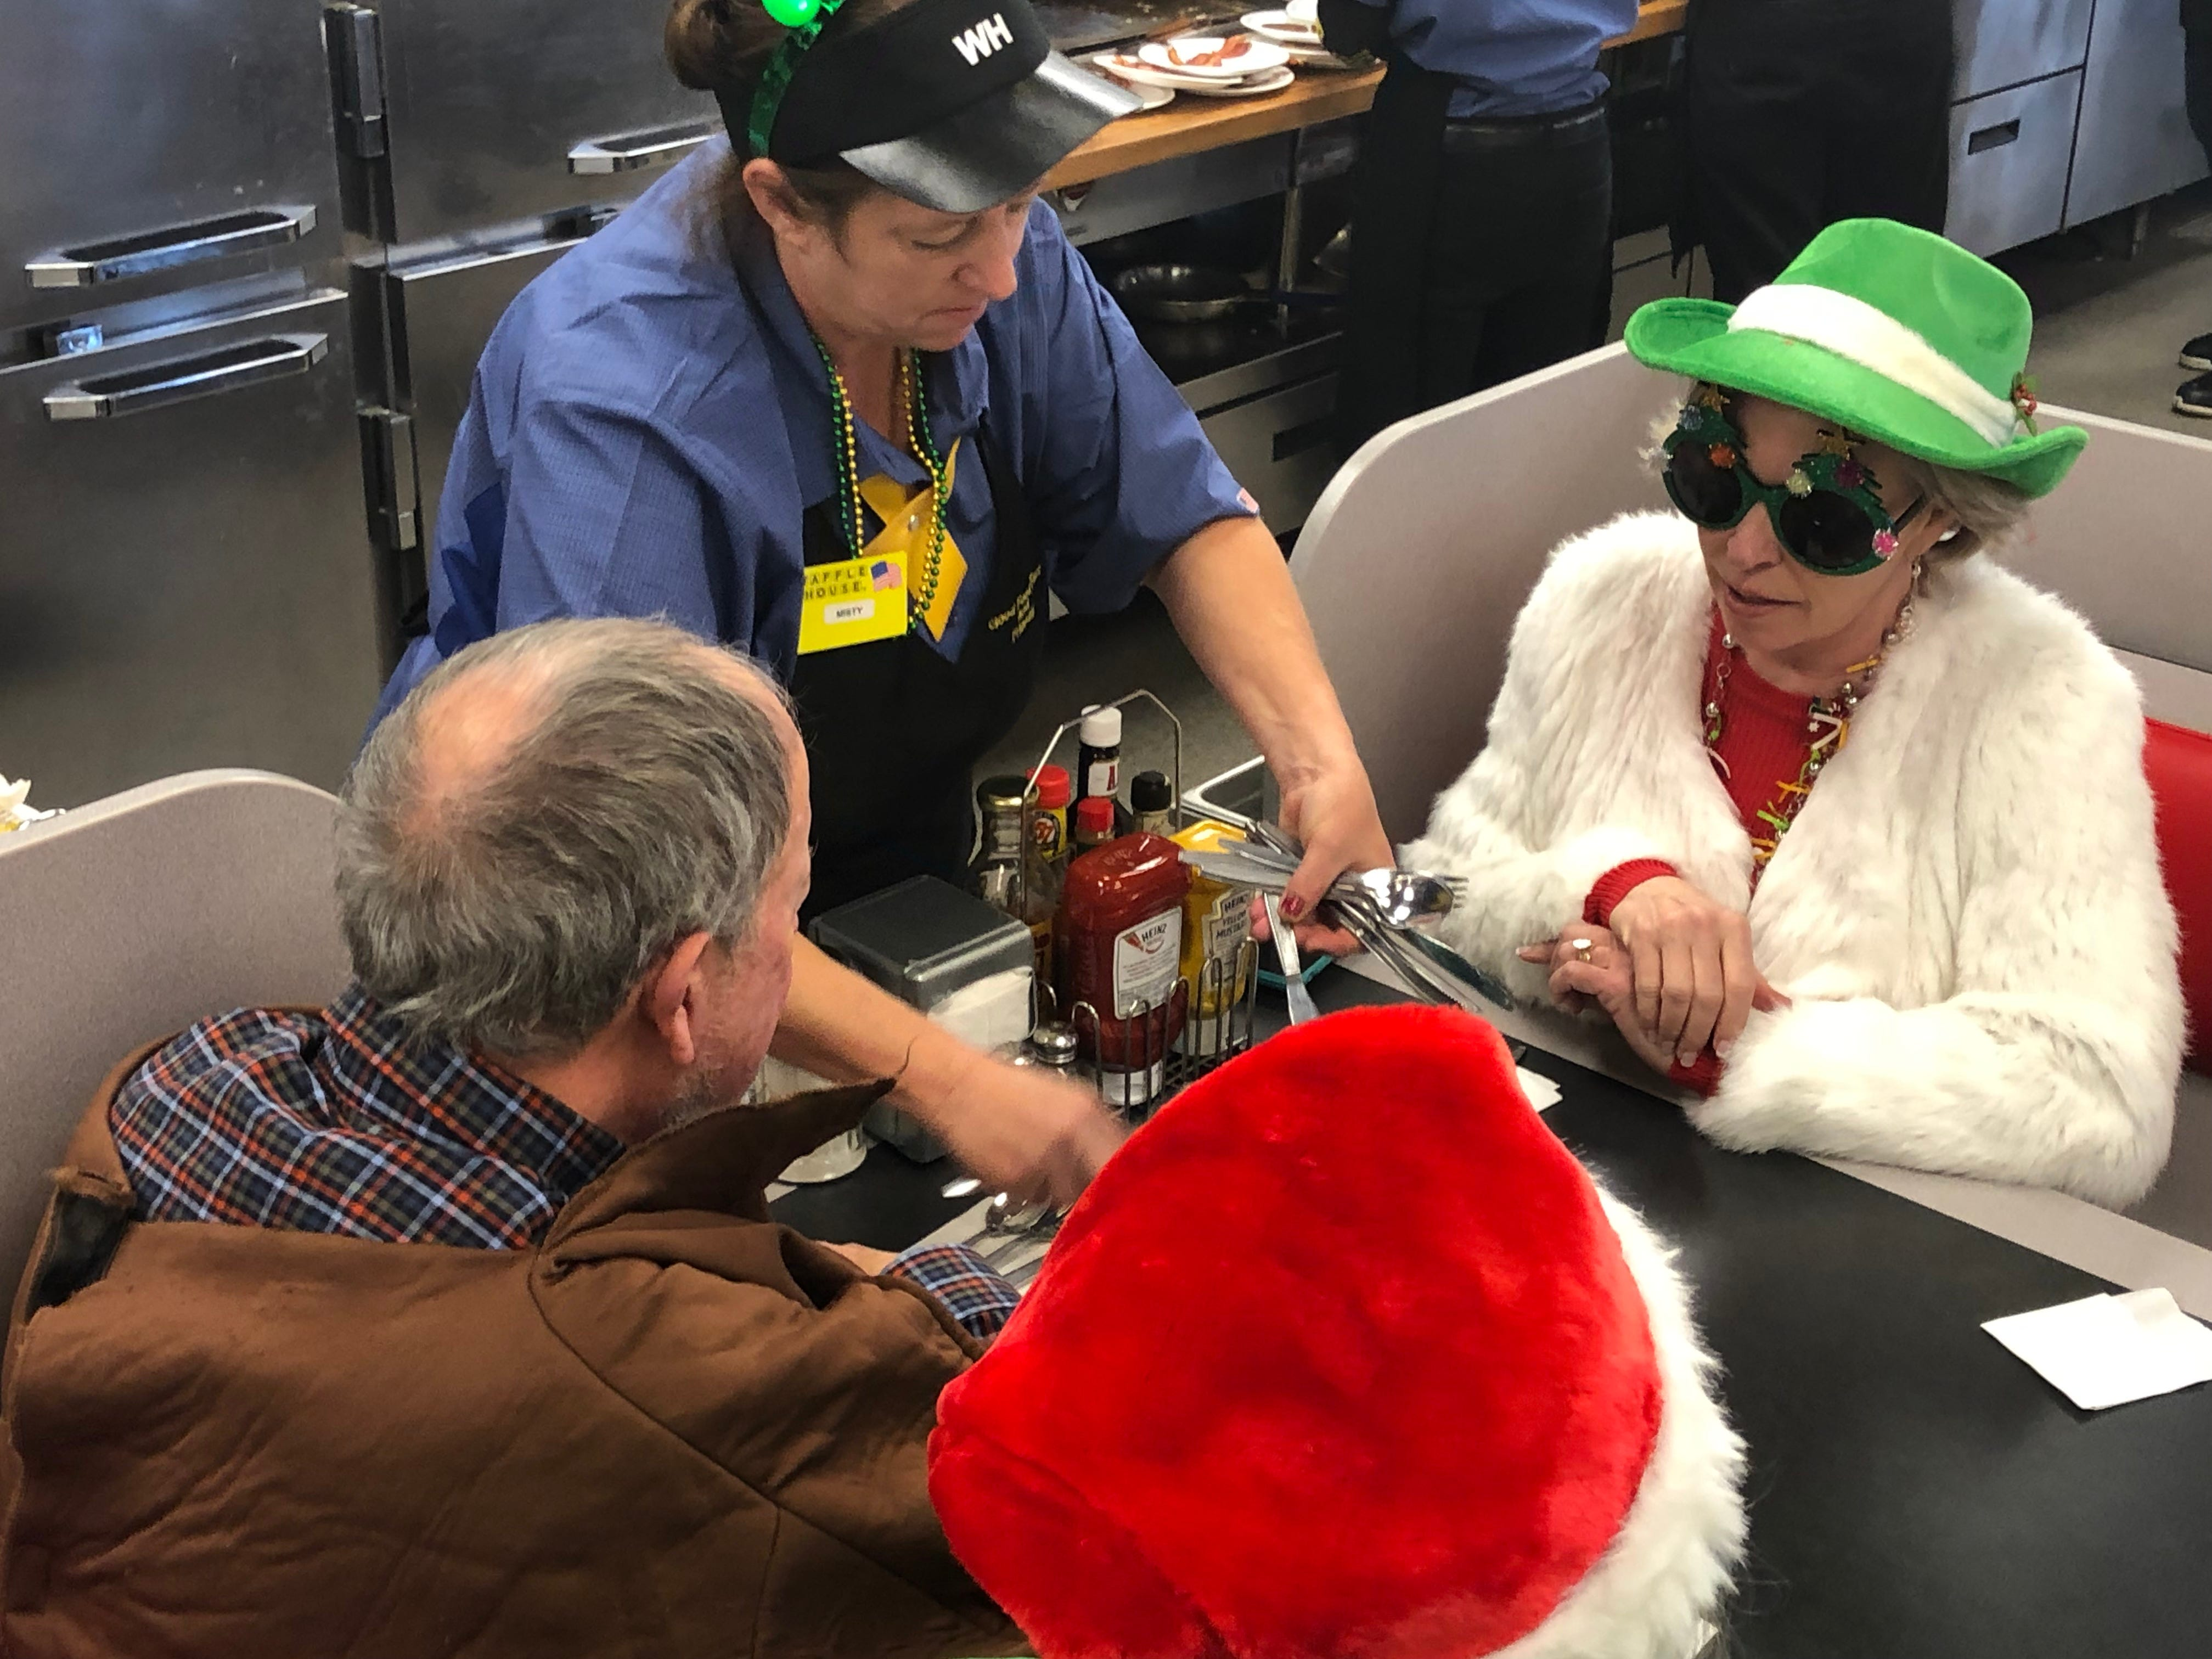 Lydia Armistead, right, in the green hat, relaxes with some of her neighbors at the White Bridge Road Waffle House Christmas morning 2018 after they passed out candies and cash.